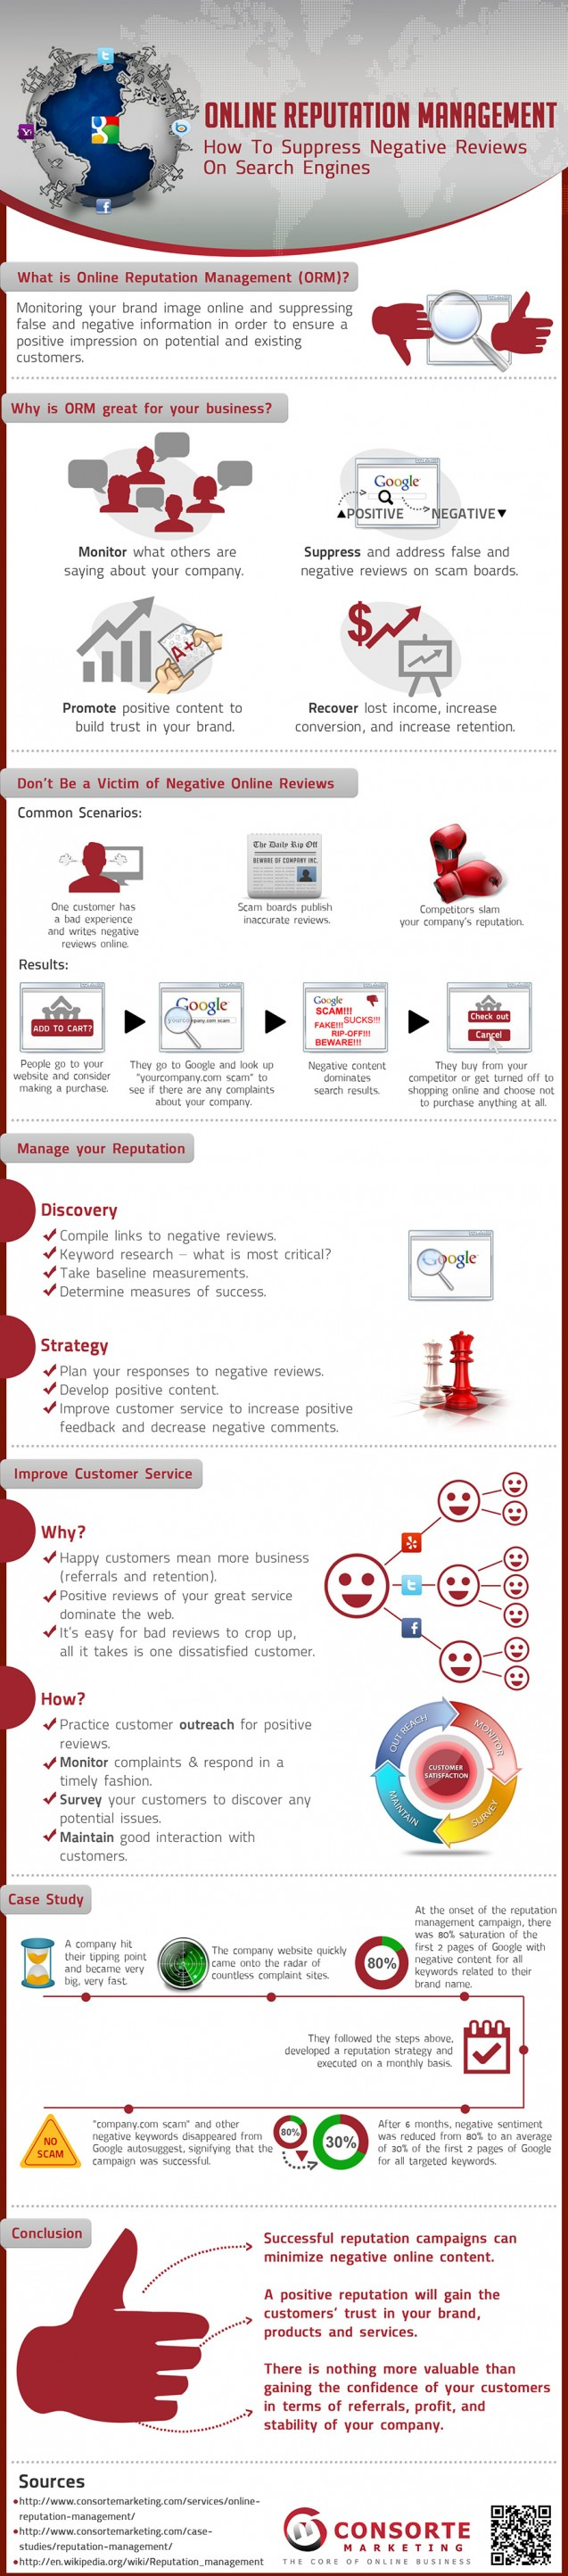 Online-Reputation-Management-infographic